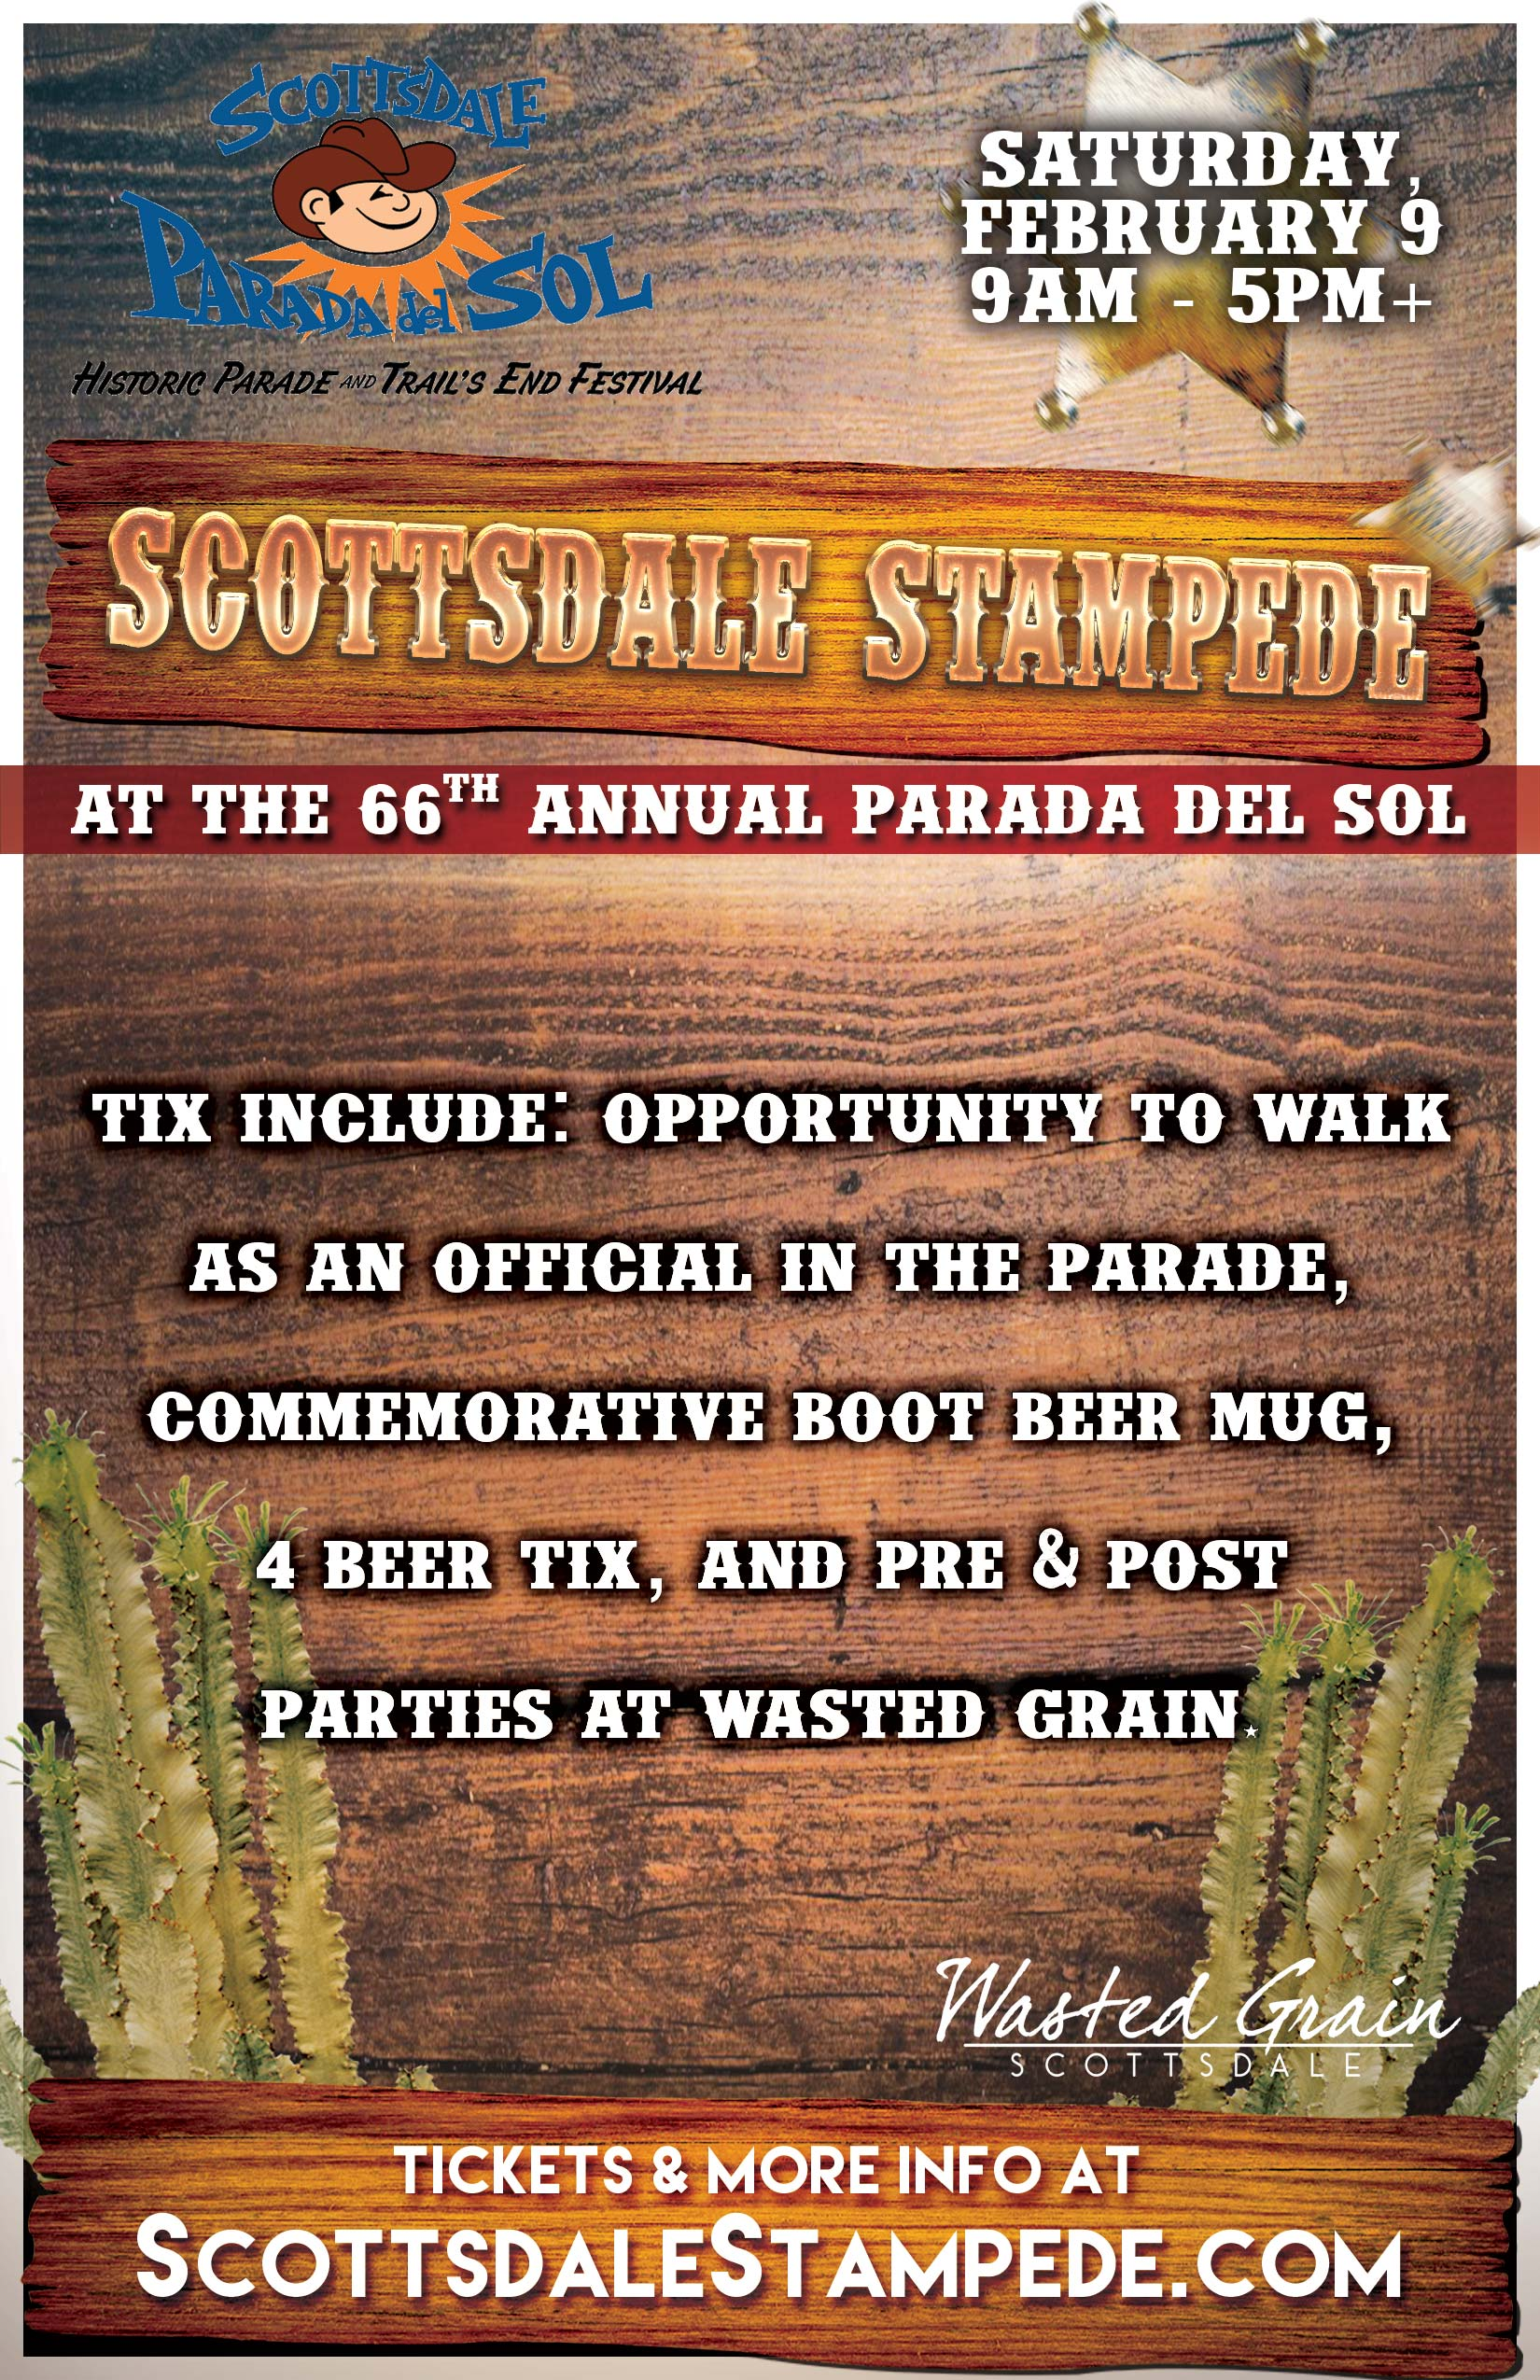 Scottsdale Stampede - Tickets include walking as an official in the Parada Del Sol, a commemorative boot beer mug, four drink tickets, admission to the Trails End Party, the pre and post party event at Wasted Grain with live music. Drink tickets are redeemable at Wasted Grain, Cold Beers & Cheeseburgers, and any of the Trails End Festival beer vendors.